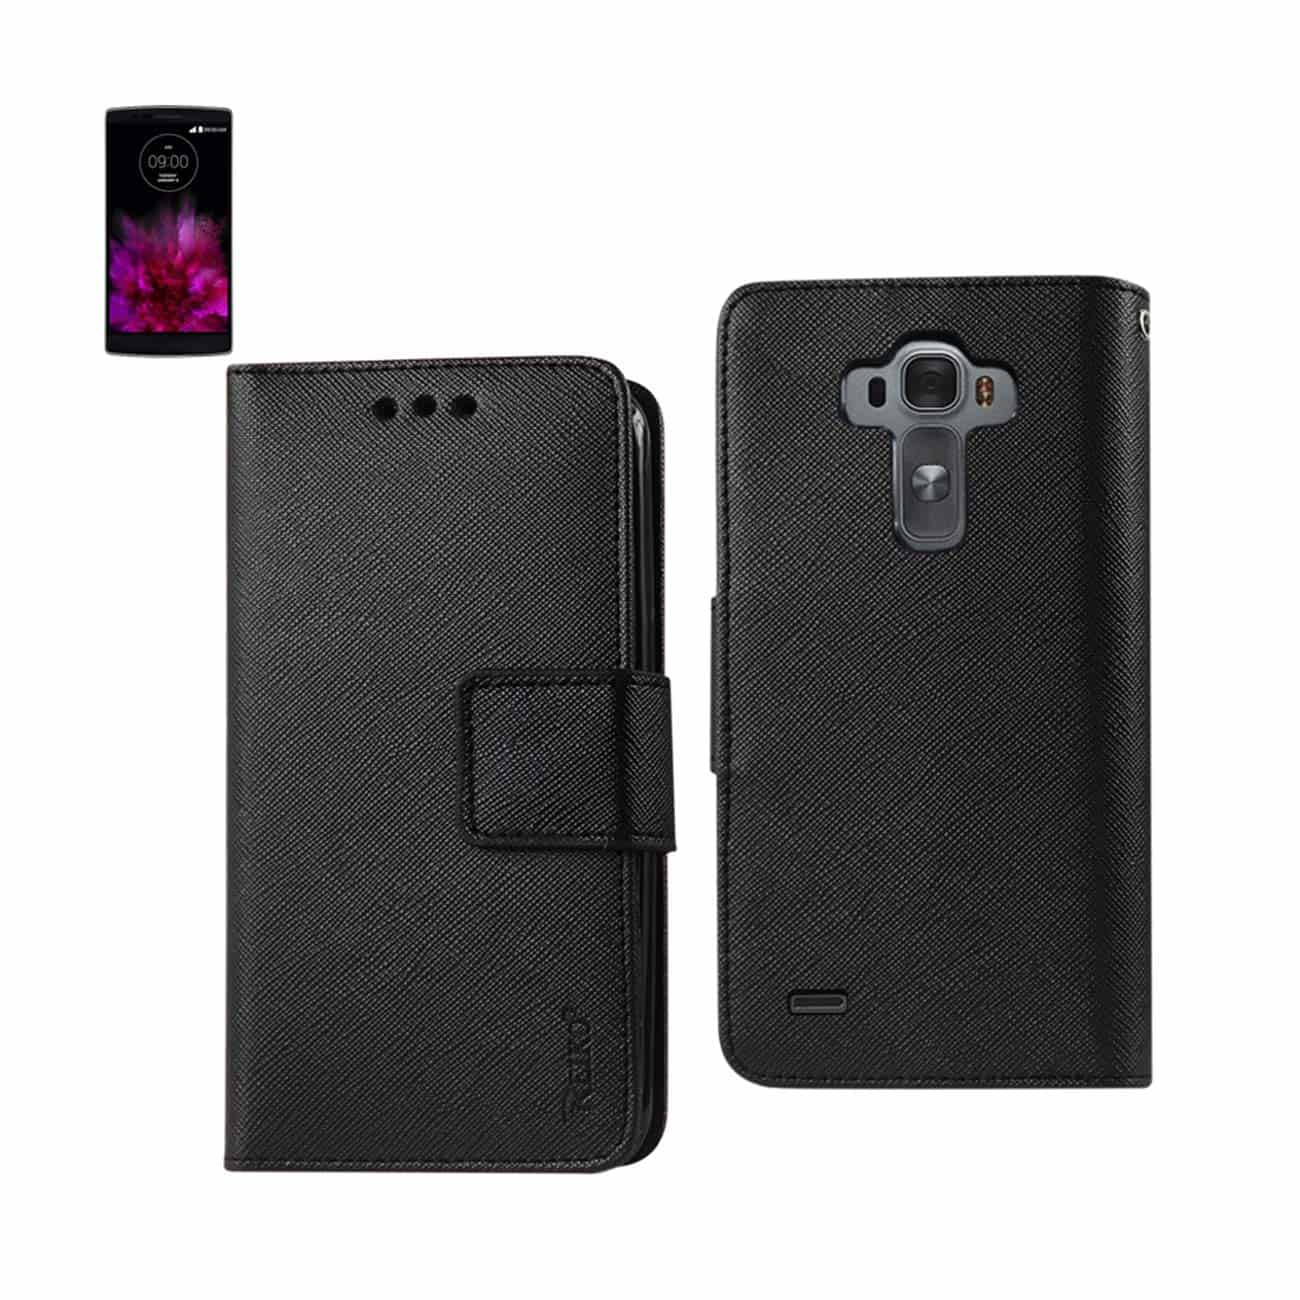 LG G FLEX 2 3-IN-1 WALLET CASE IN BLACK